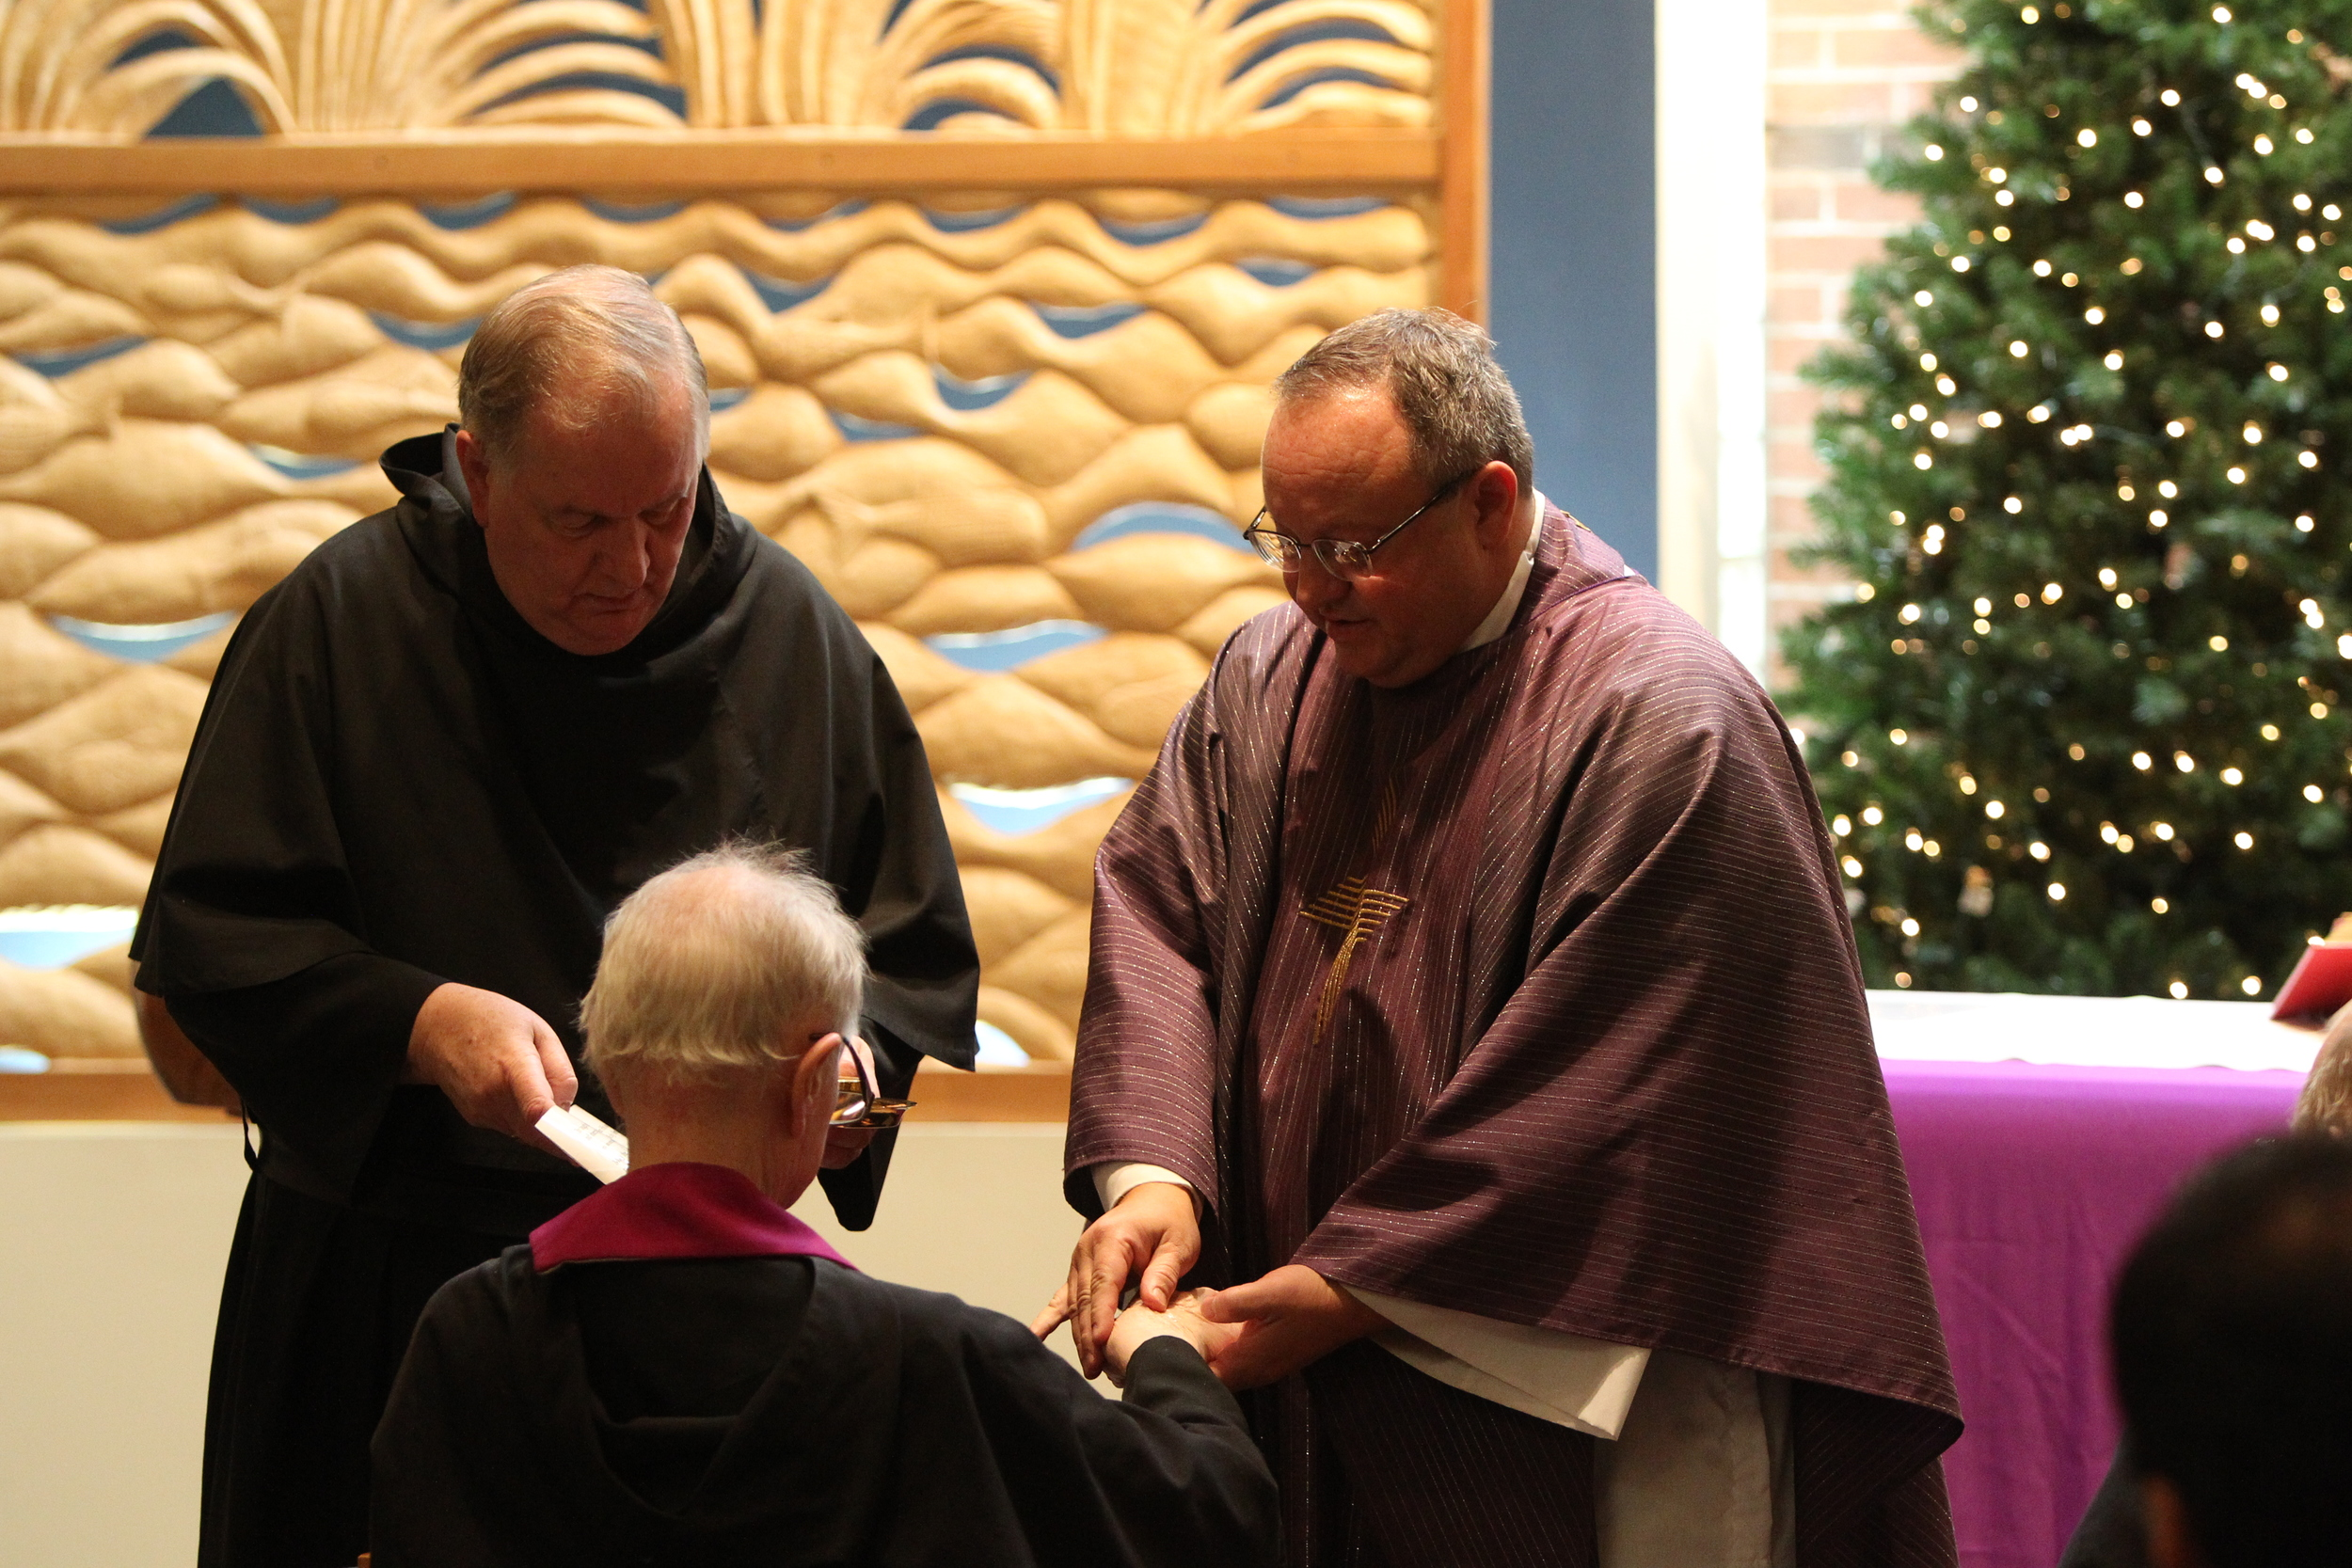 Fr. Bernie Scianna, O.S.A., visits our retired Augustinians each month